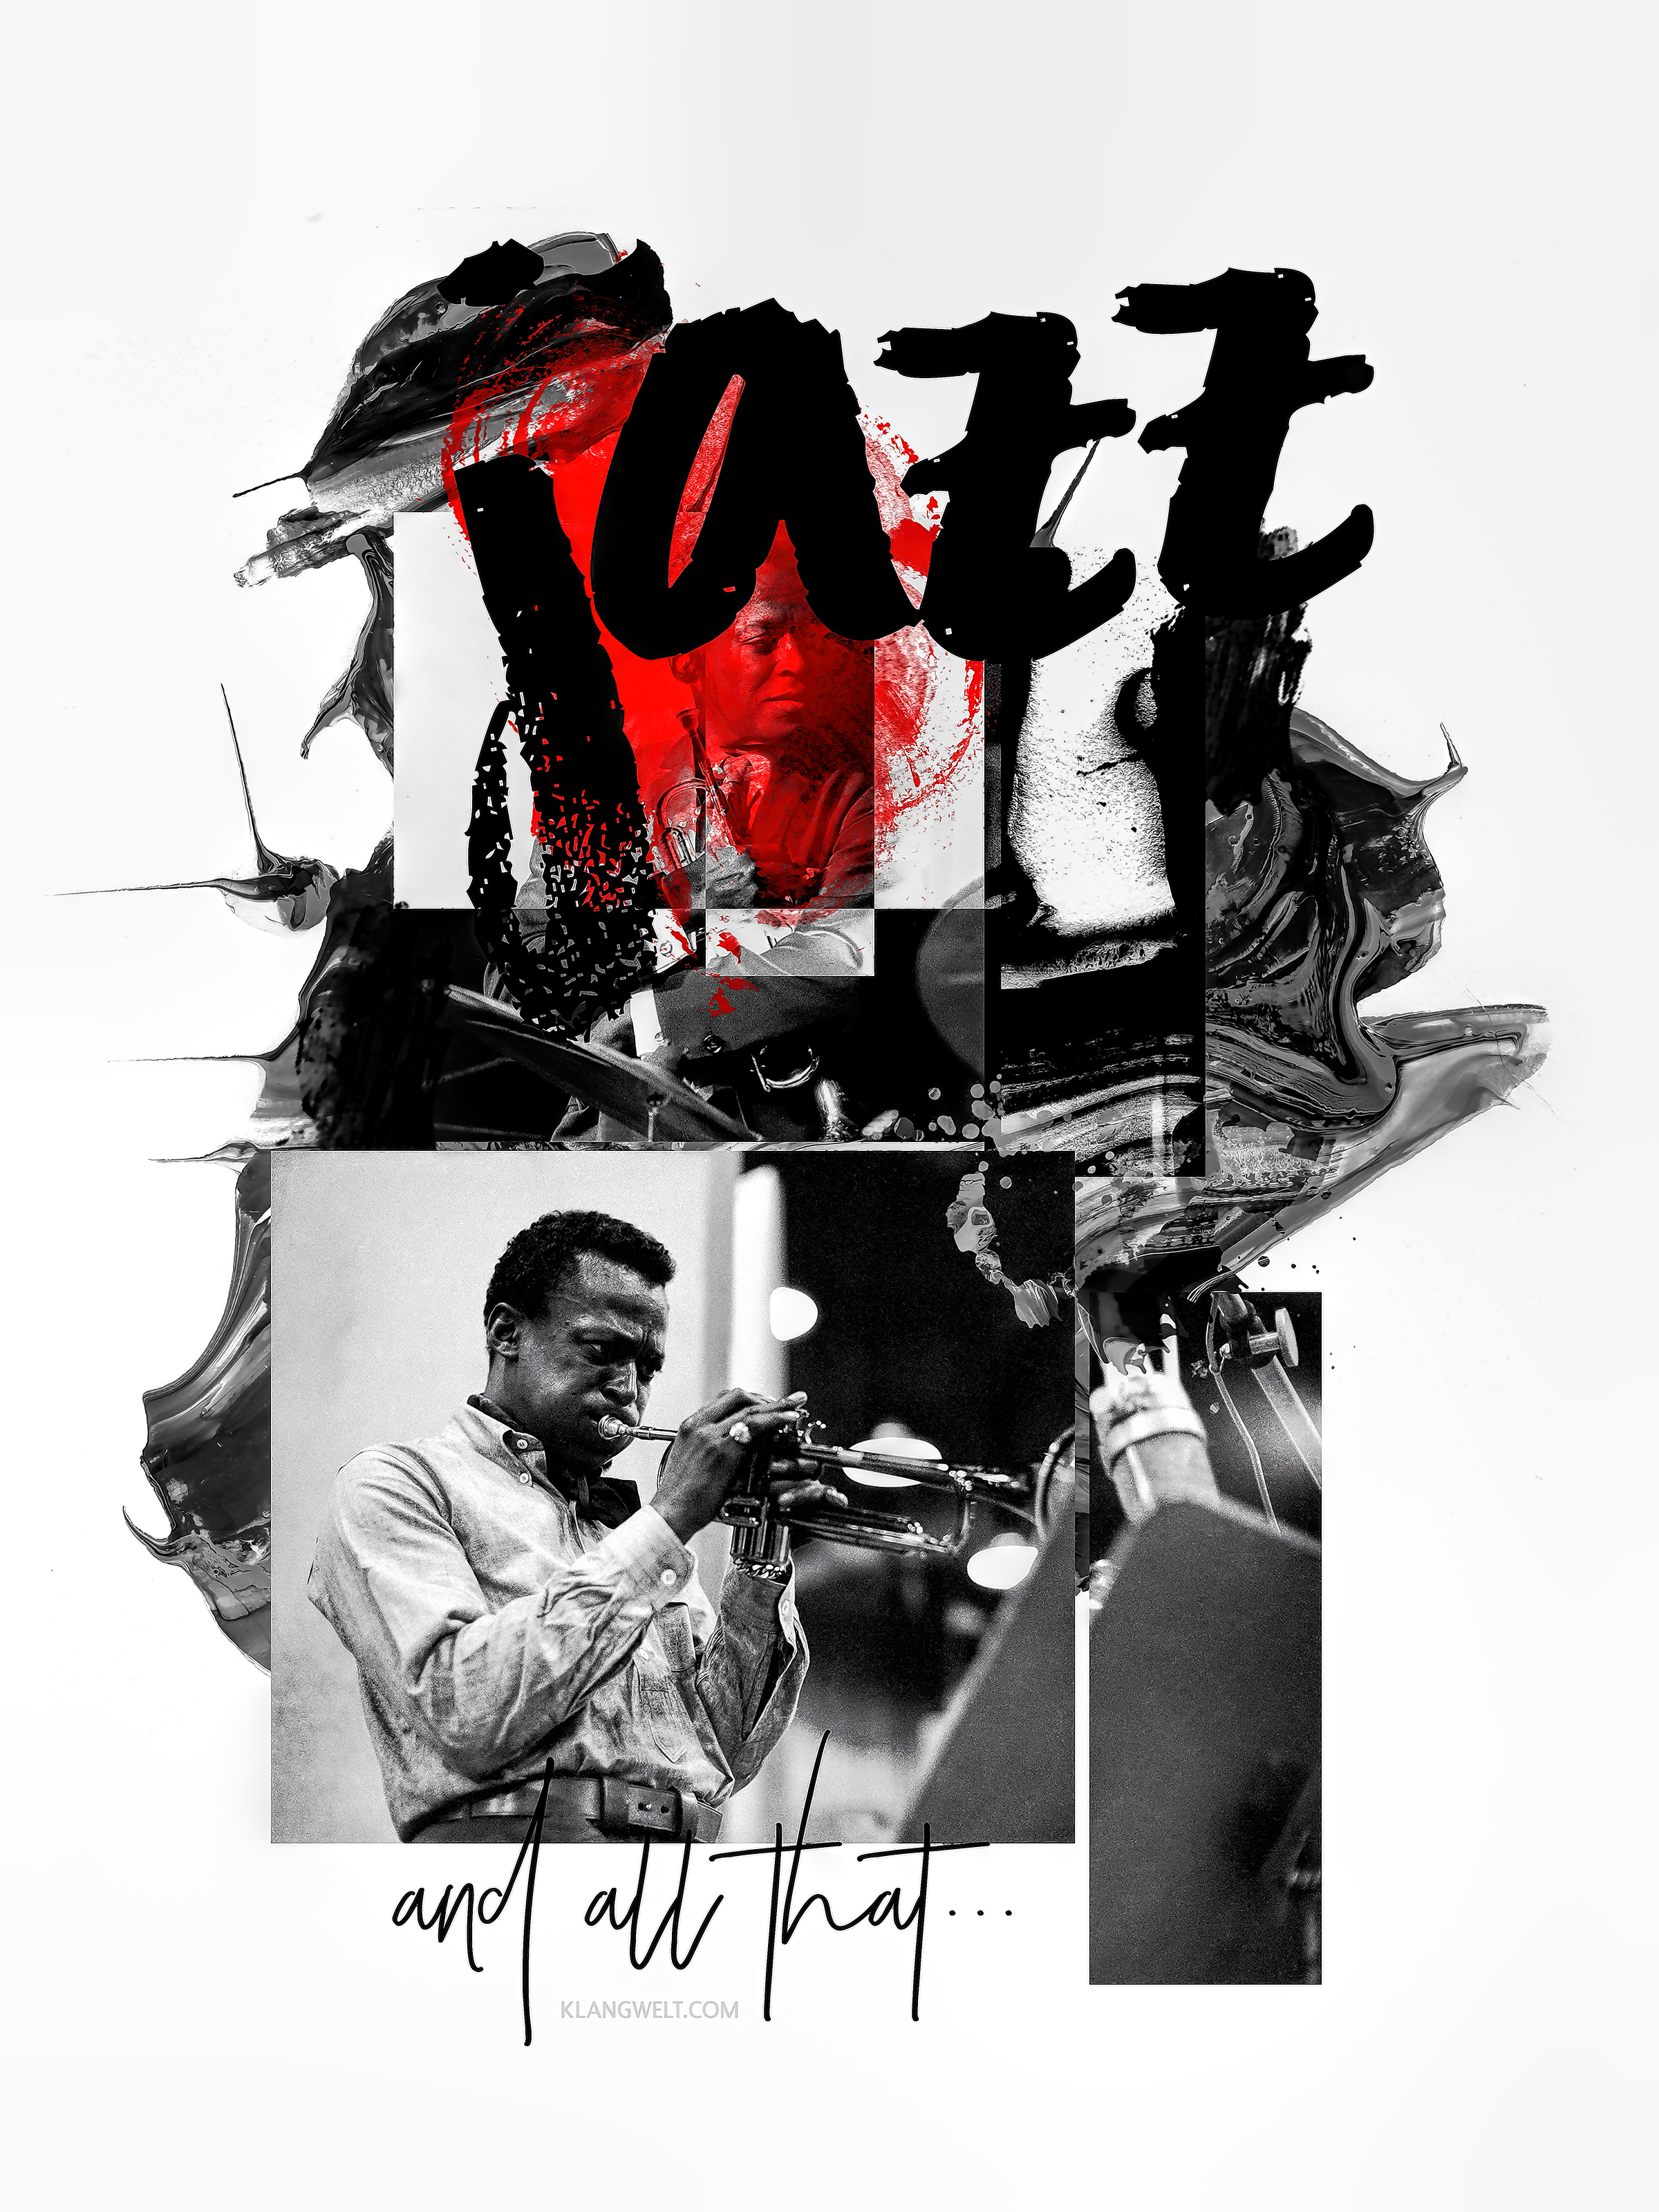 And All That Jazz Artwork by Klangwelt